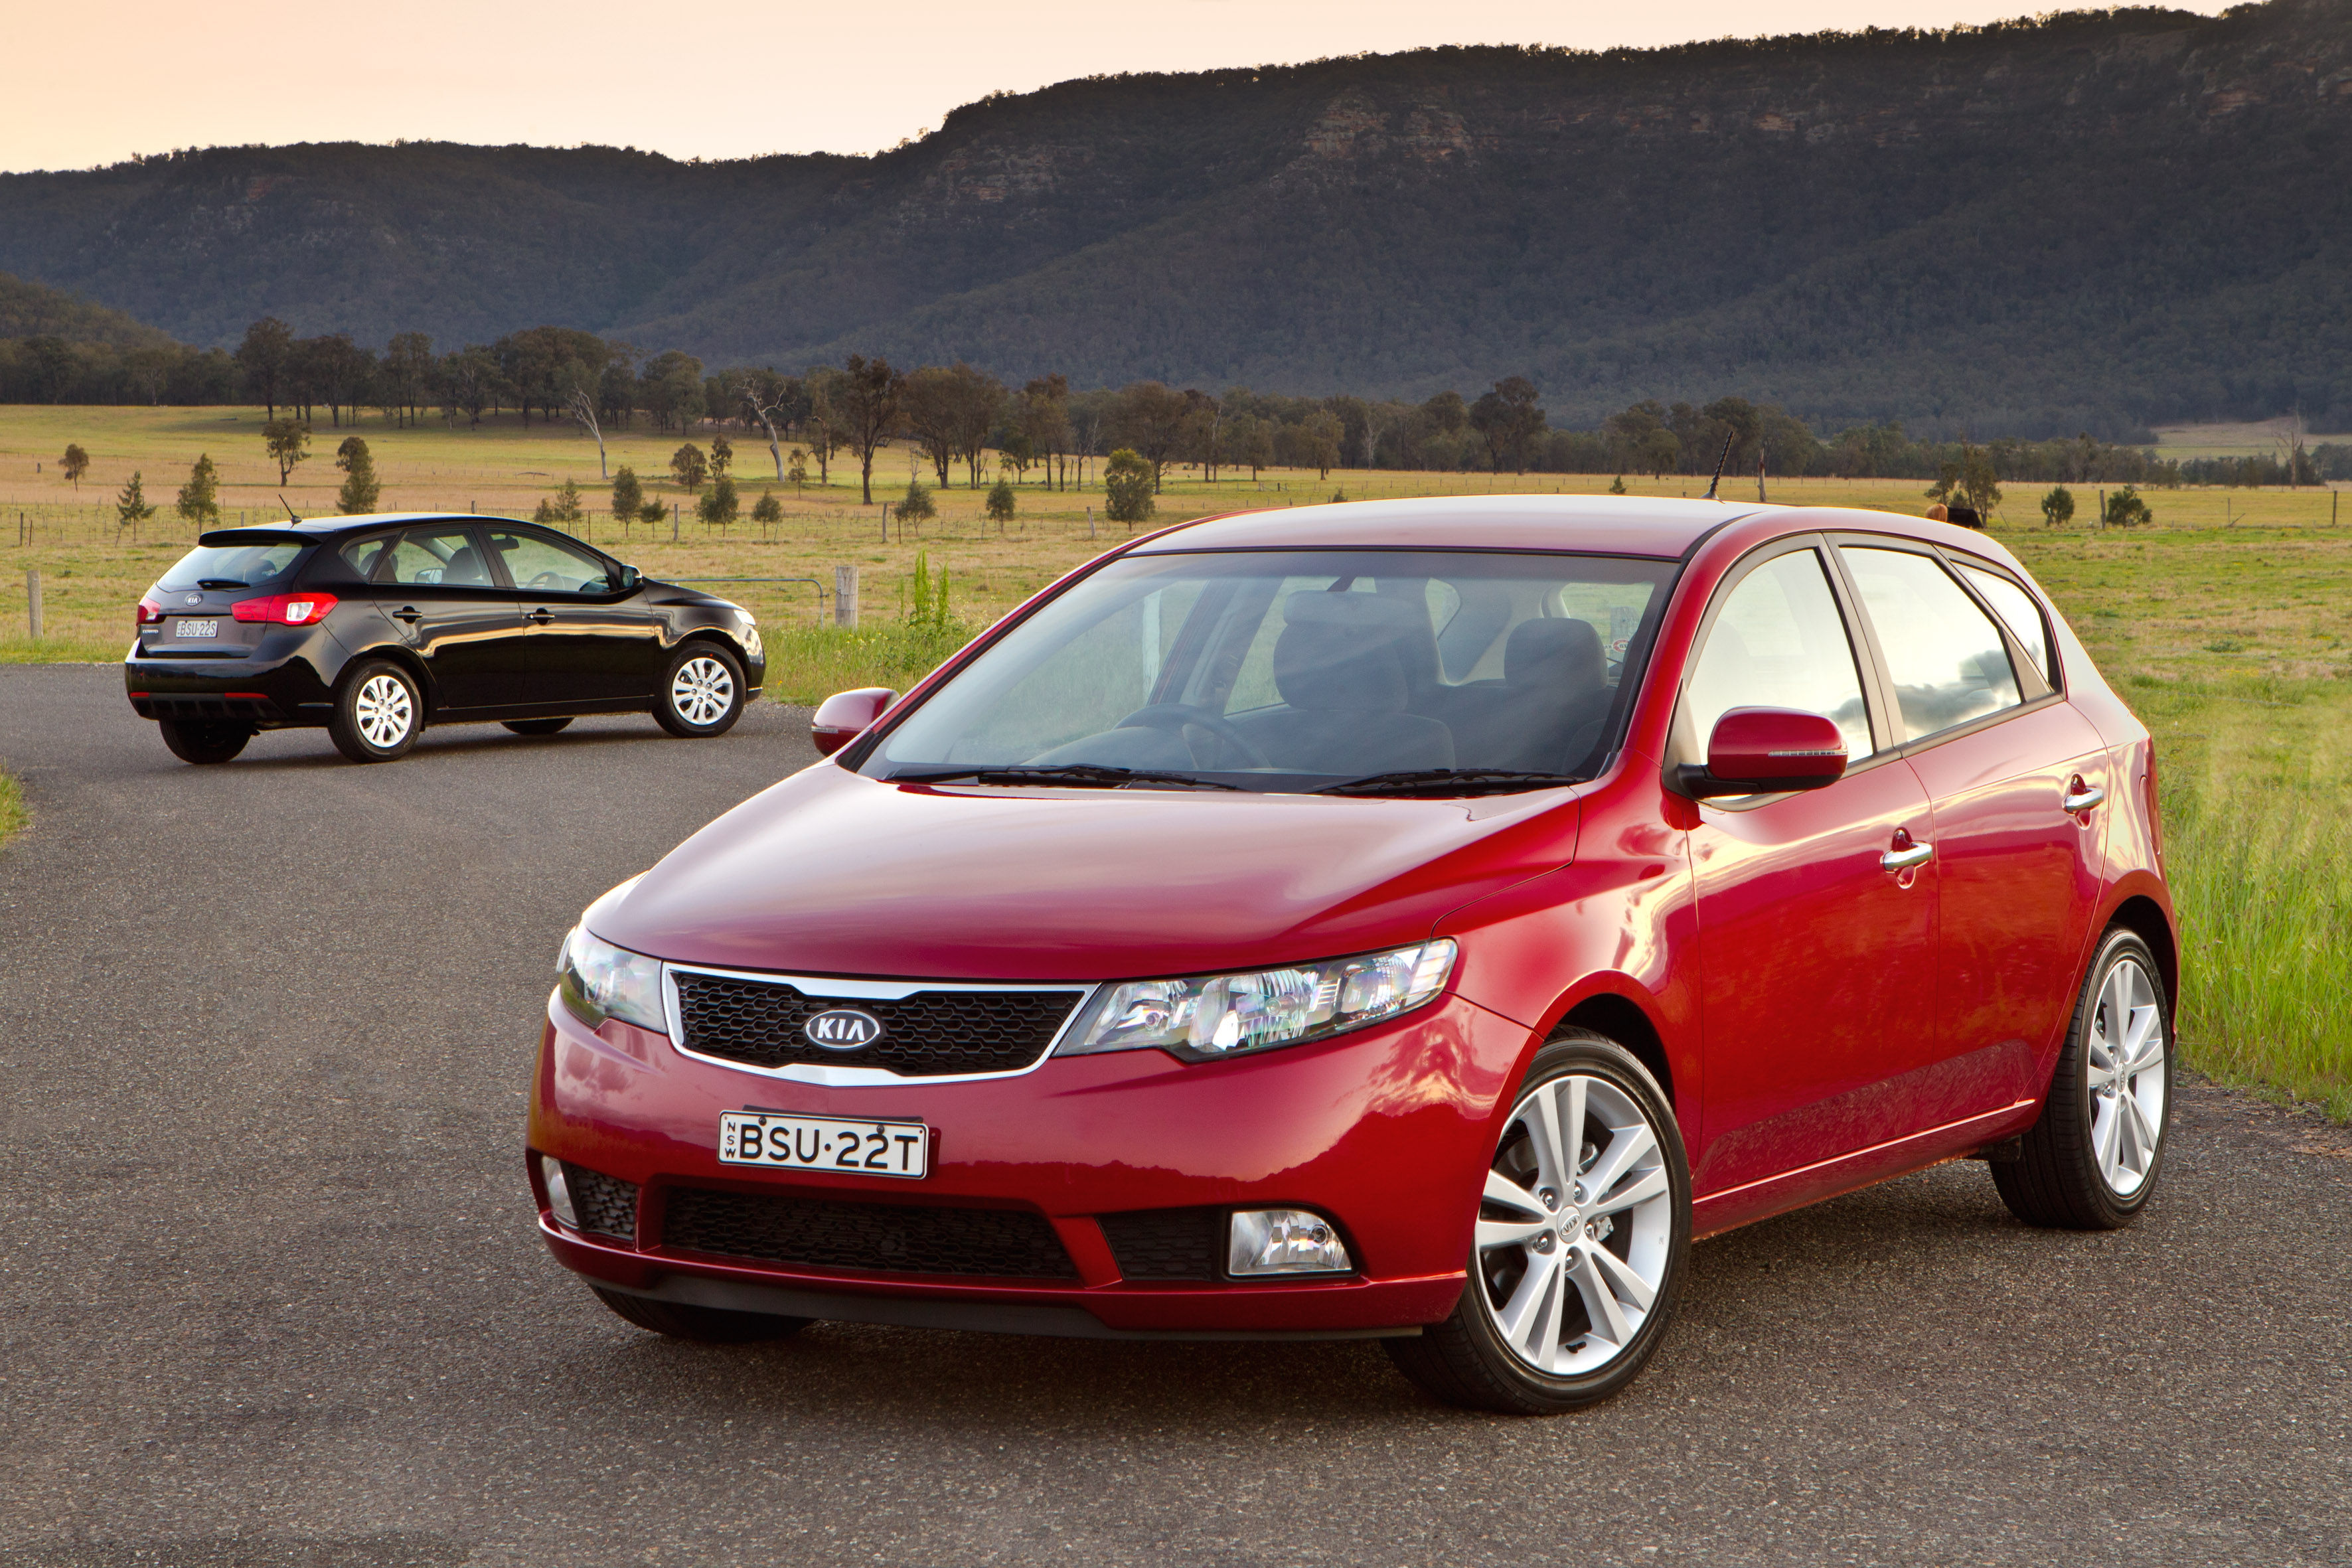 Review - 2010 Kia Cerato Hatchback - First Drive